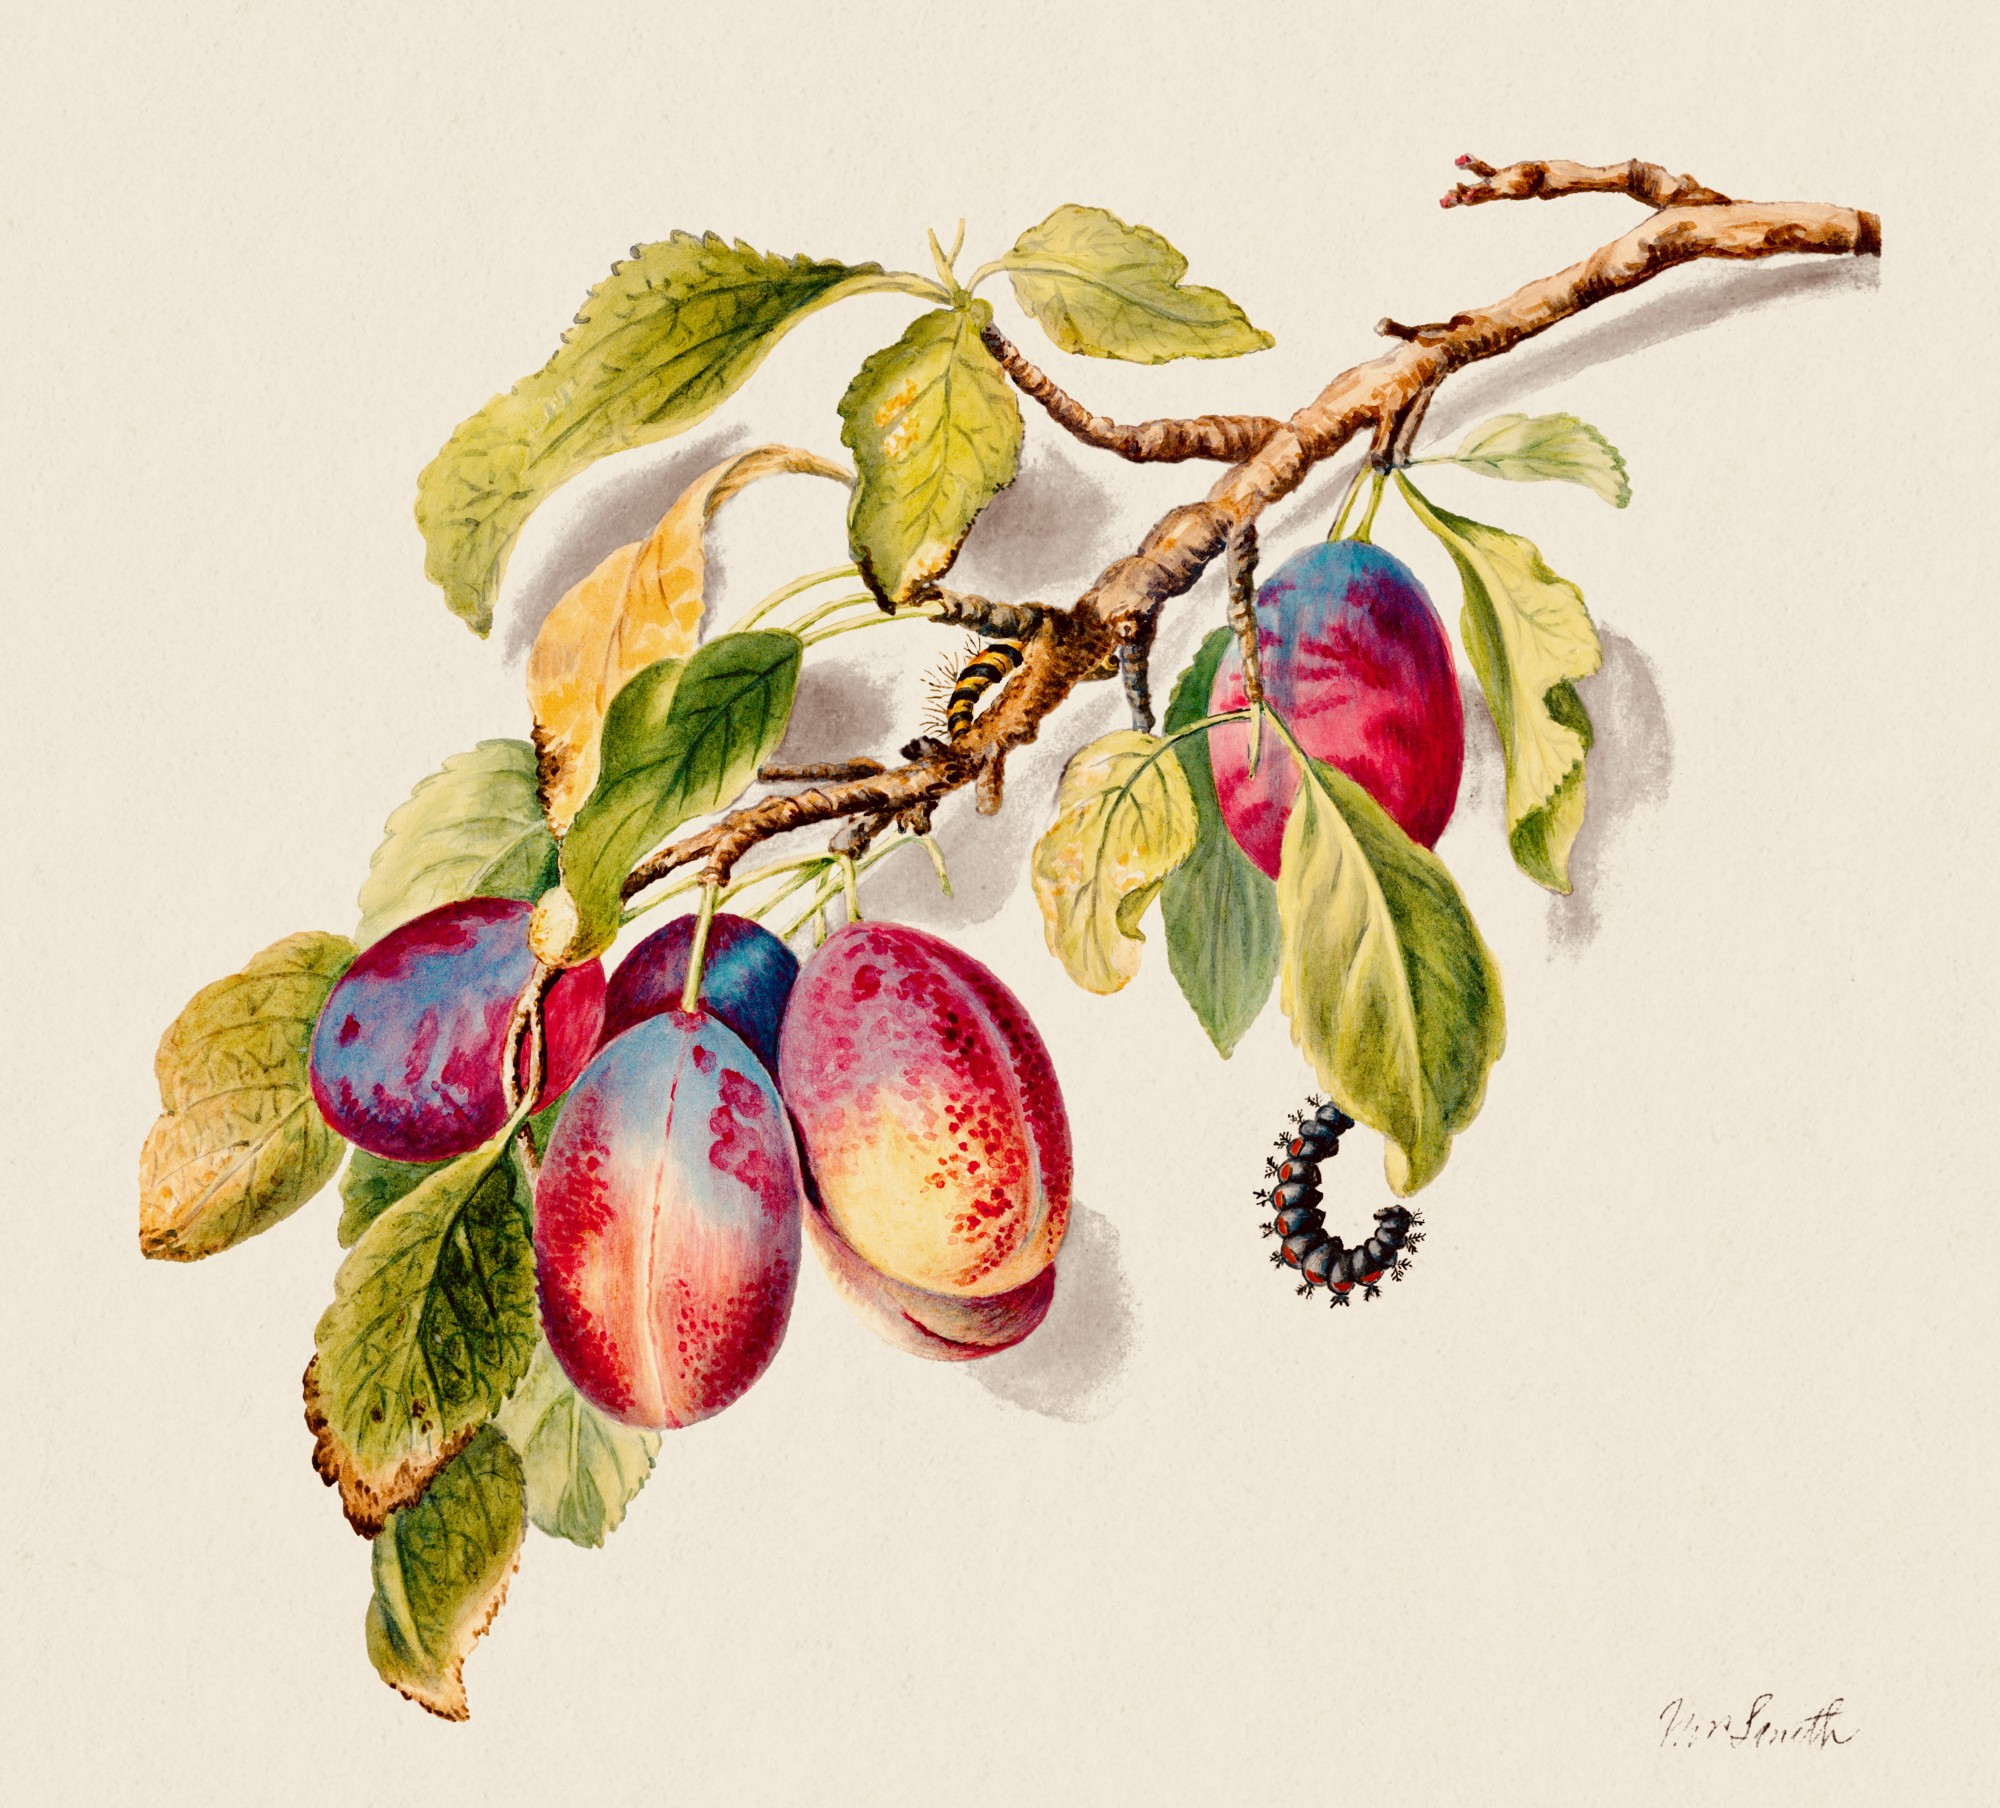 Vintage artwork of a tree branch with plump plums and caterpillars crawling on its leaves